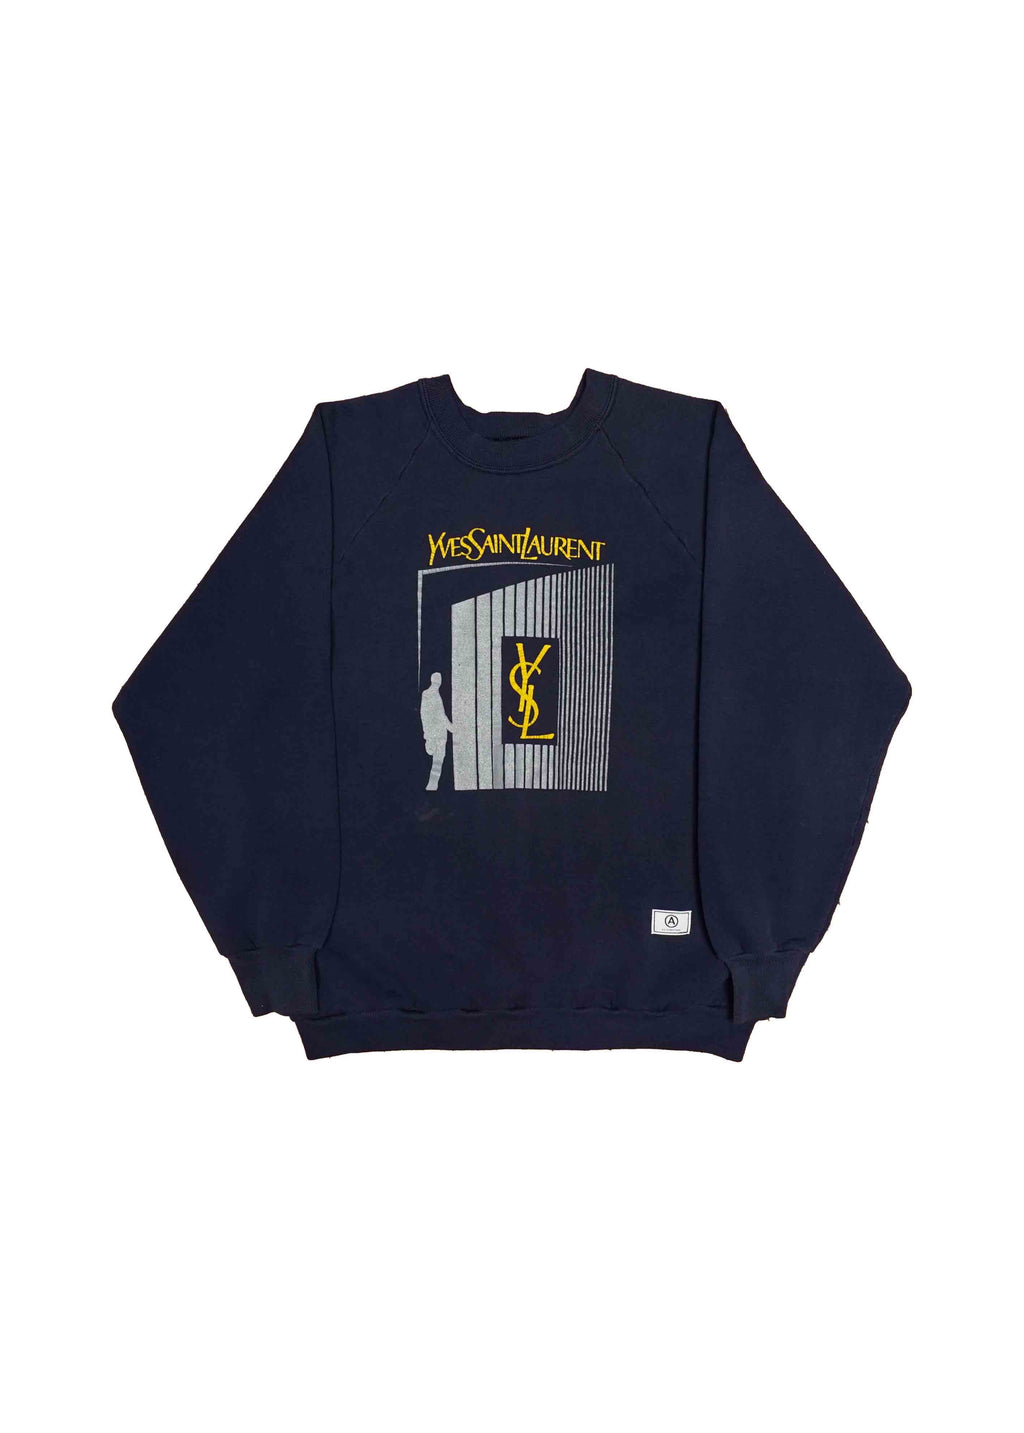 YSL NAVY CREW NECK // US ALTERATION